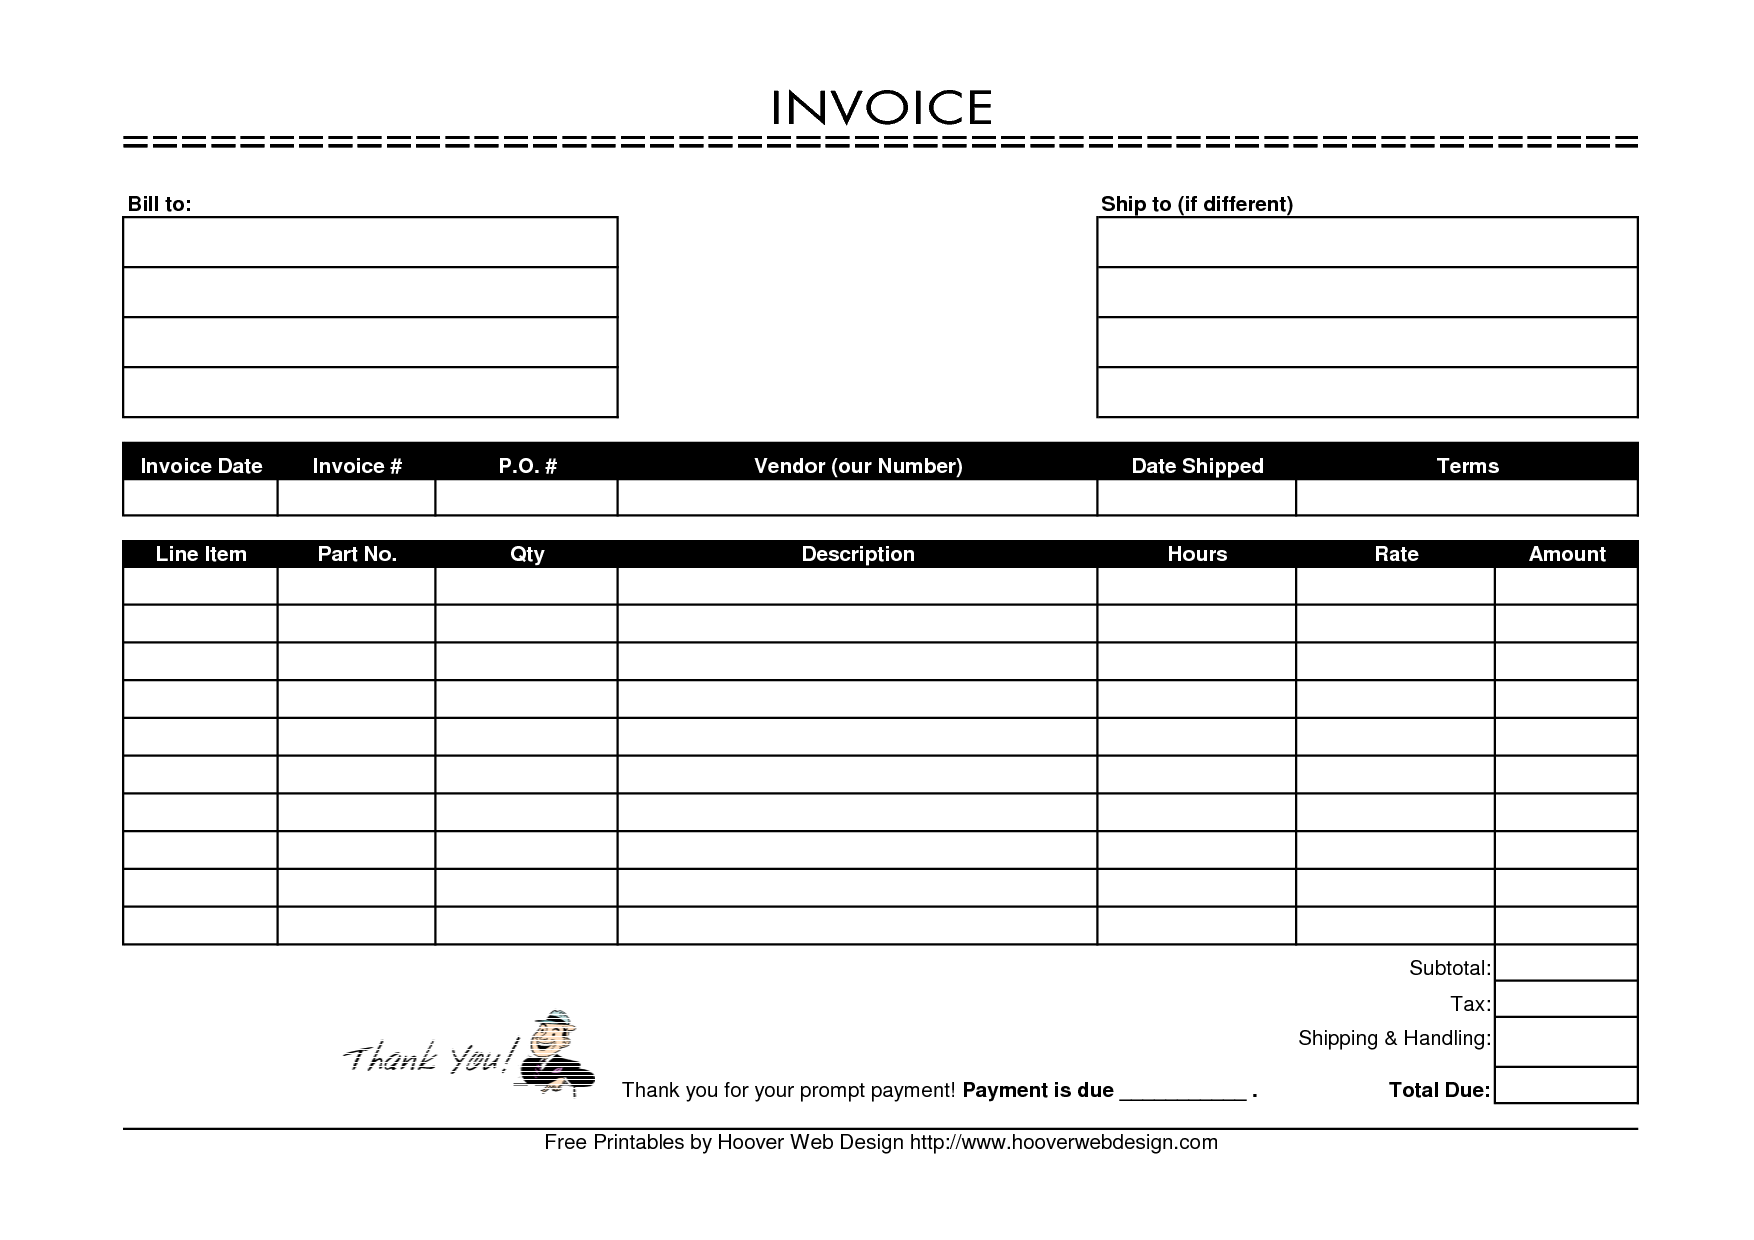 Invoice Template Free Mac Word allbotsinfo – Free Blank Forms